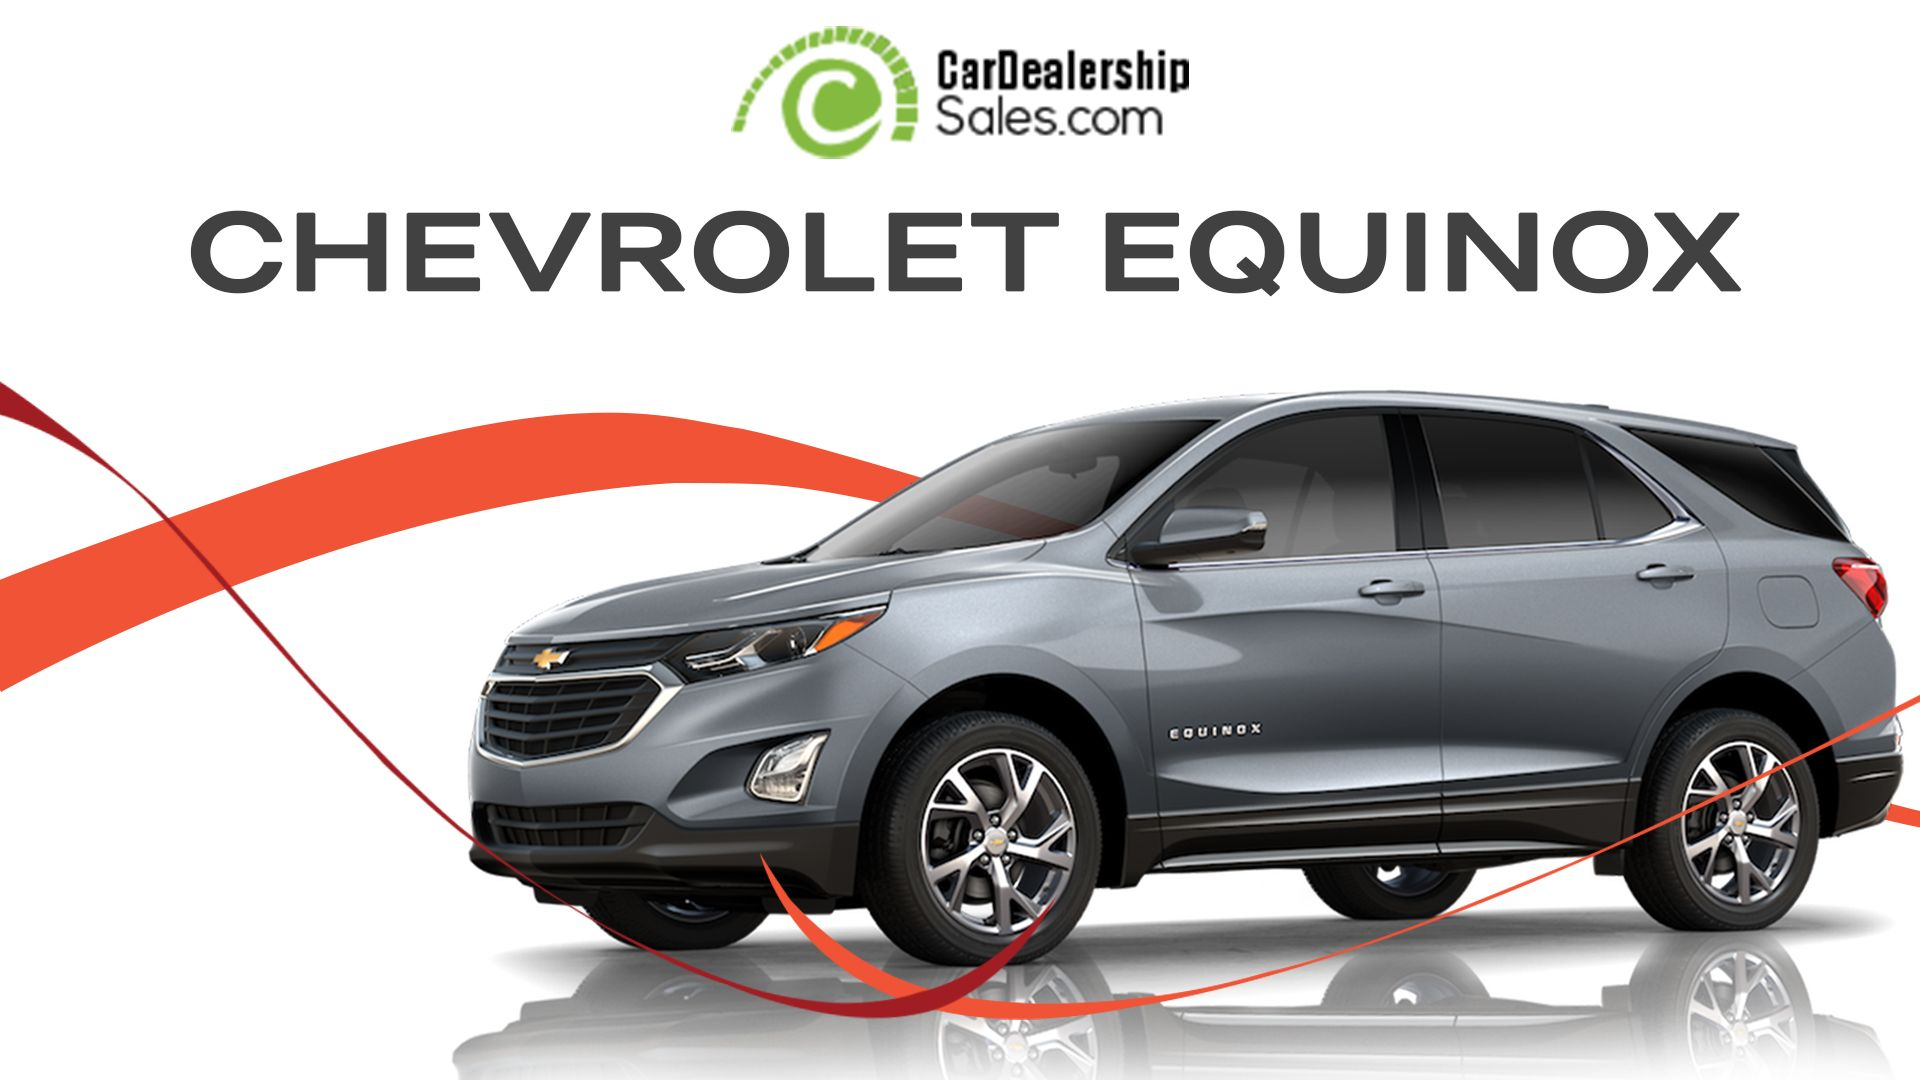 Chevy Equinox Reviews Best Compact Suv 2019 Chevy Equinox Best Compact Suv Compact Suv